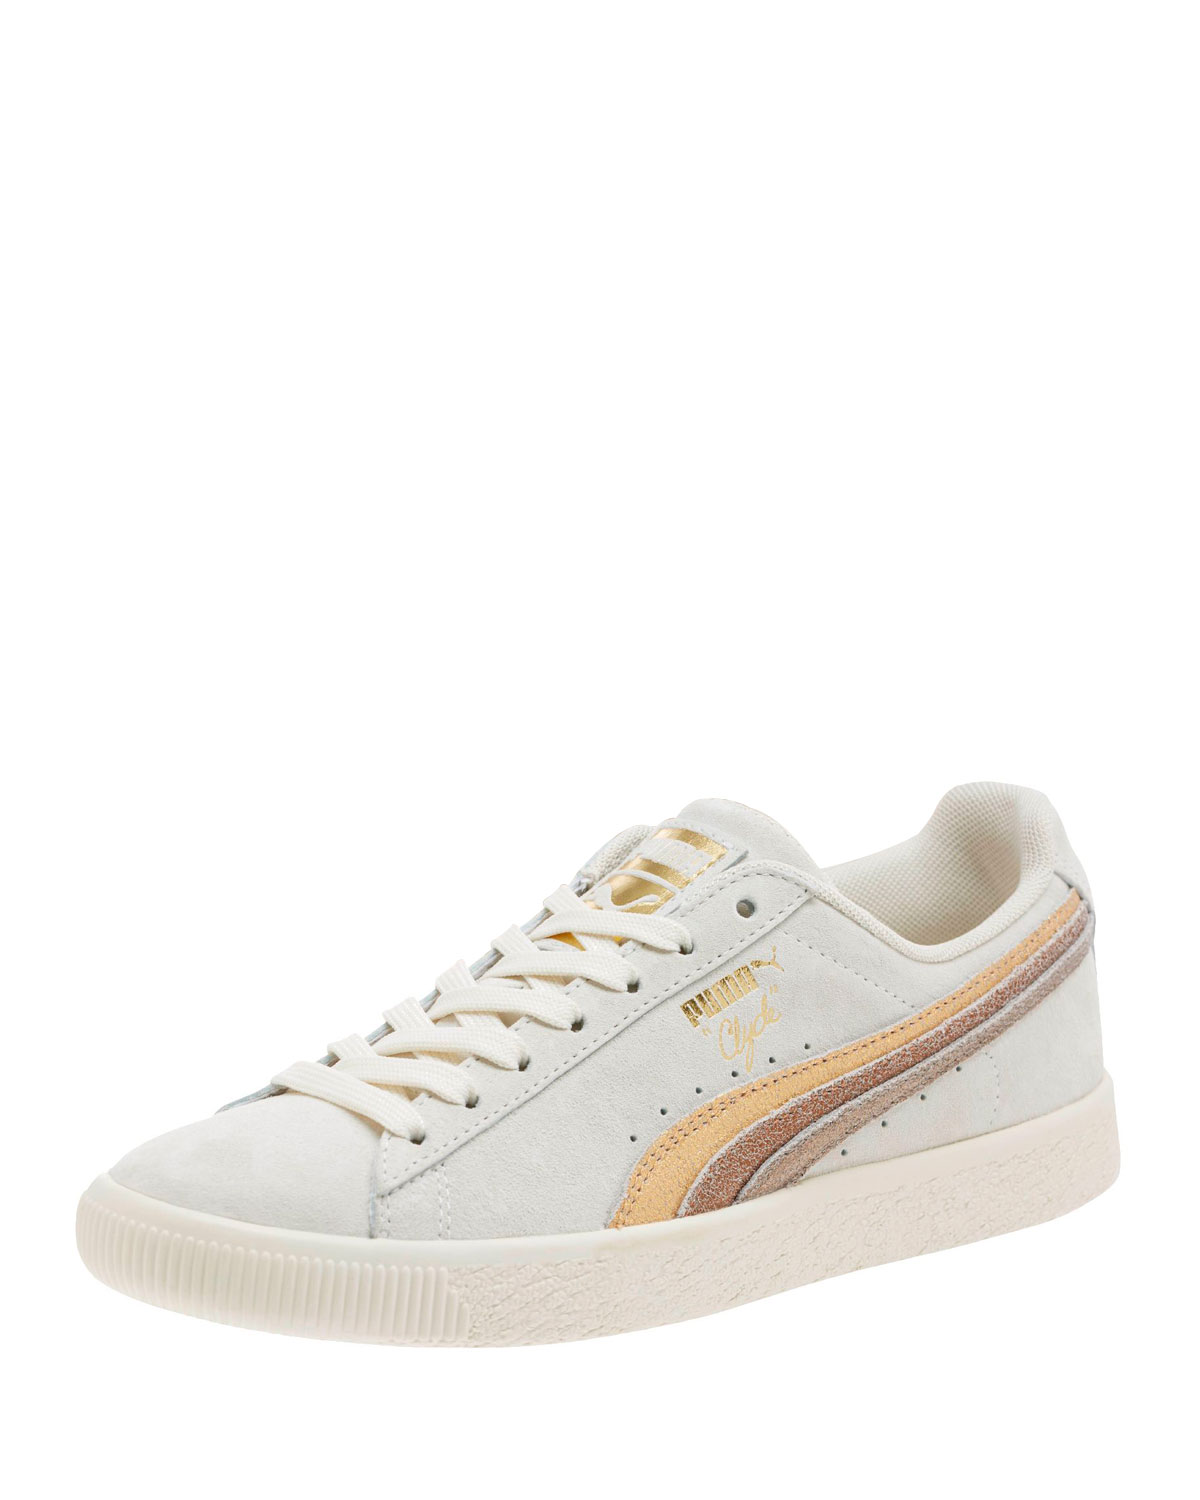 Clyde Suede Platform Sneakers, White